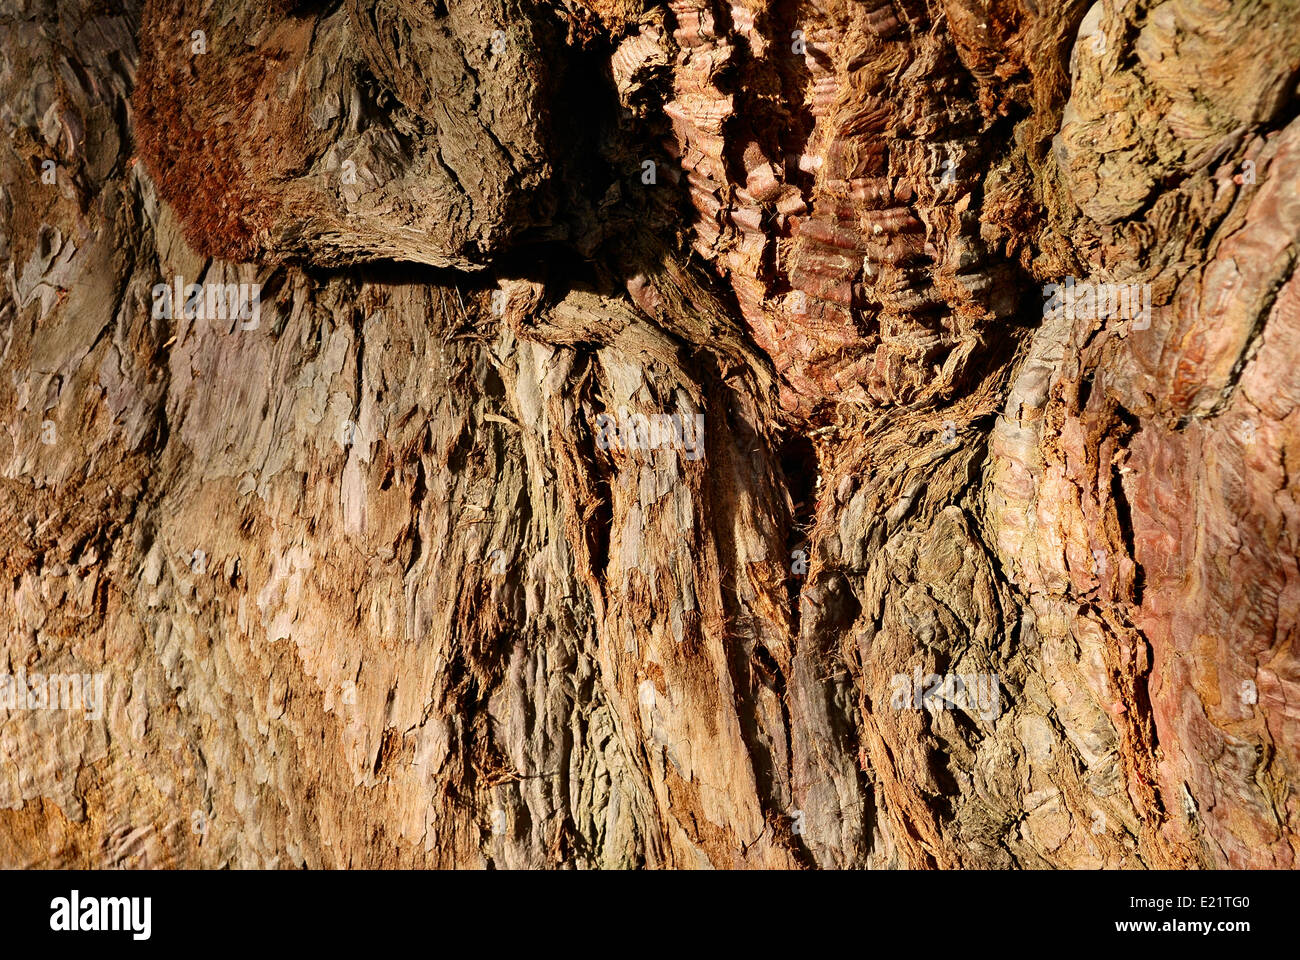 nature tree bark surface texture - Stock Image